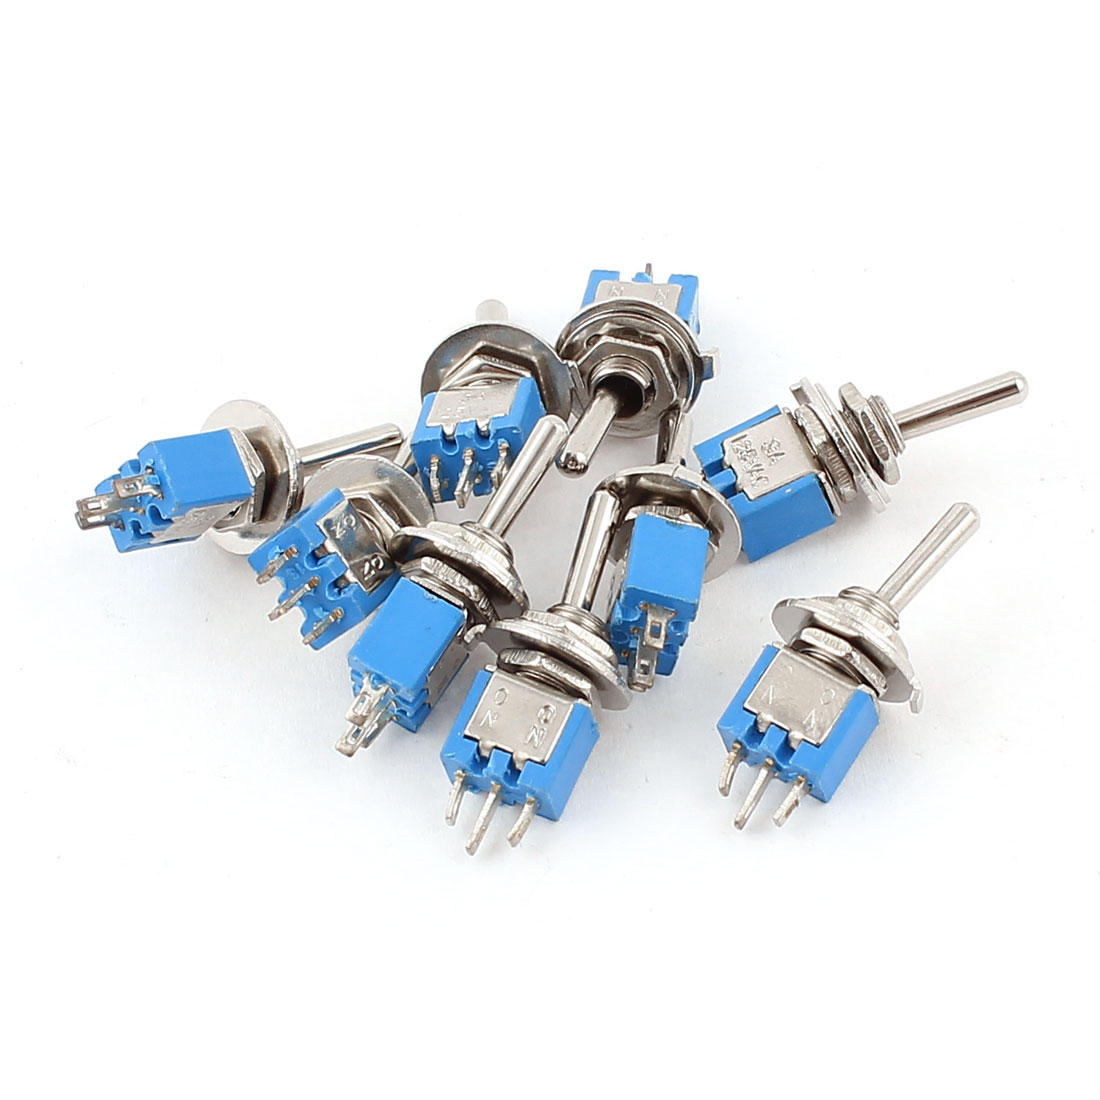 9Pcs AC 125V 3A On-On Control Panel Mount SPDT Locking Mini Toggle Switch Blue 5mm